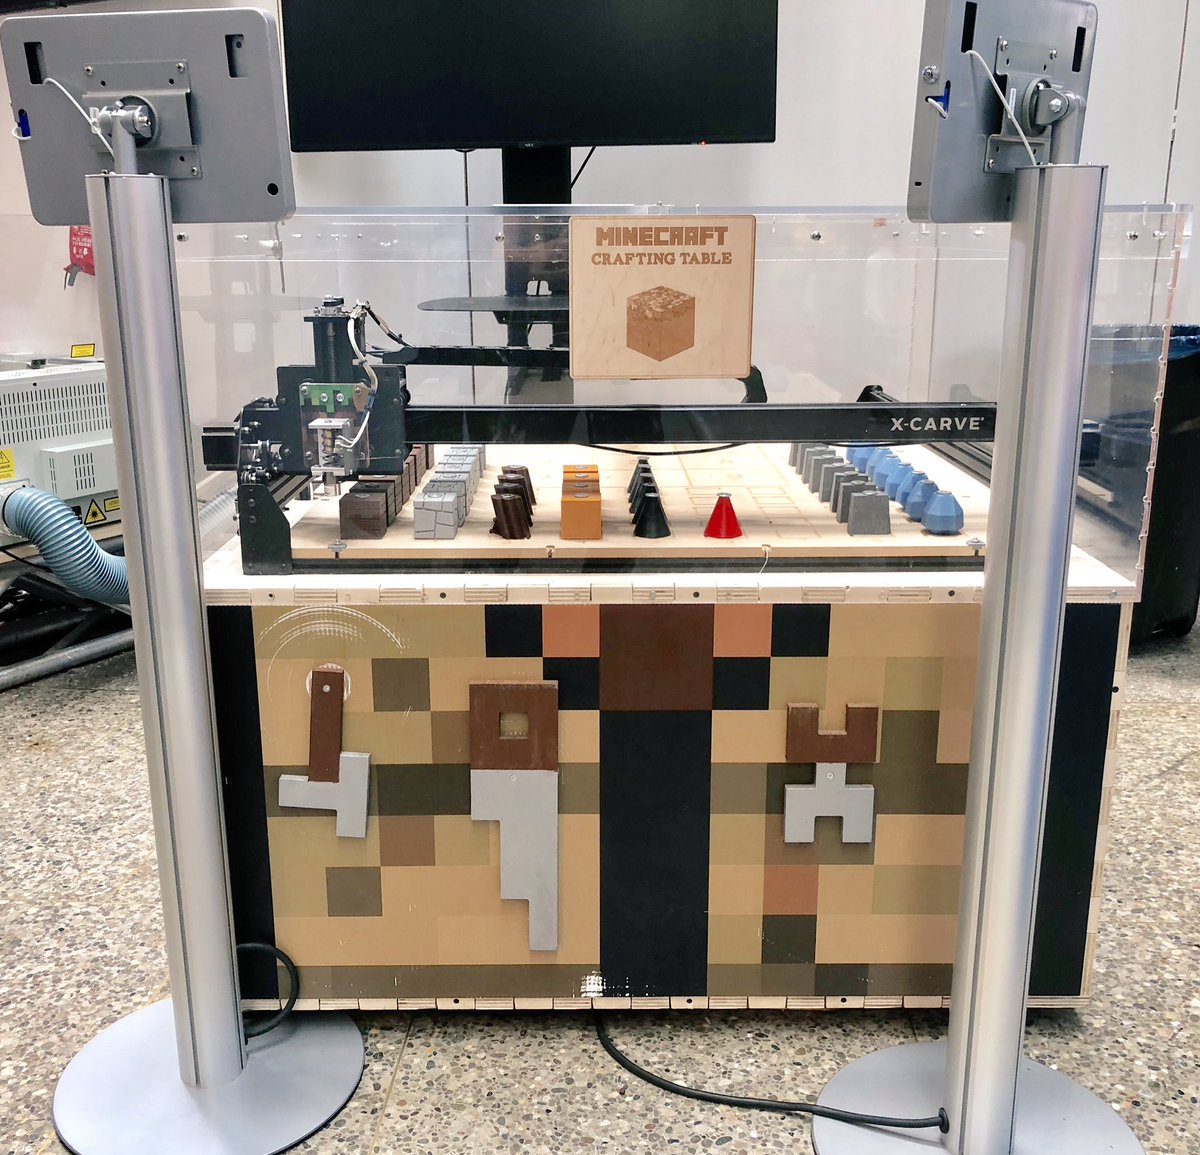 Diana Mancuso Auf Twitter Spotted At The Ontsciencectr Popnology Exhibit A Real Life Minecraft Crafting Table